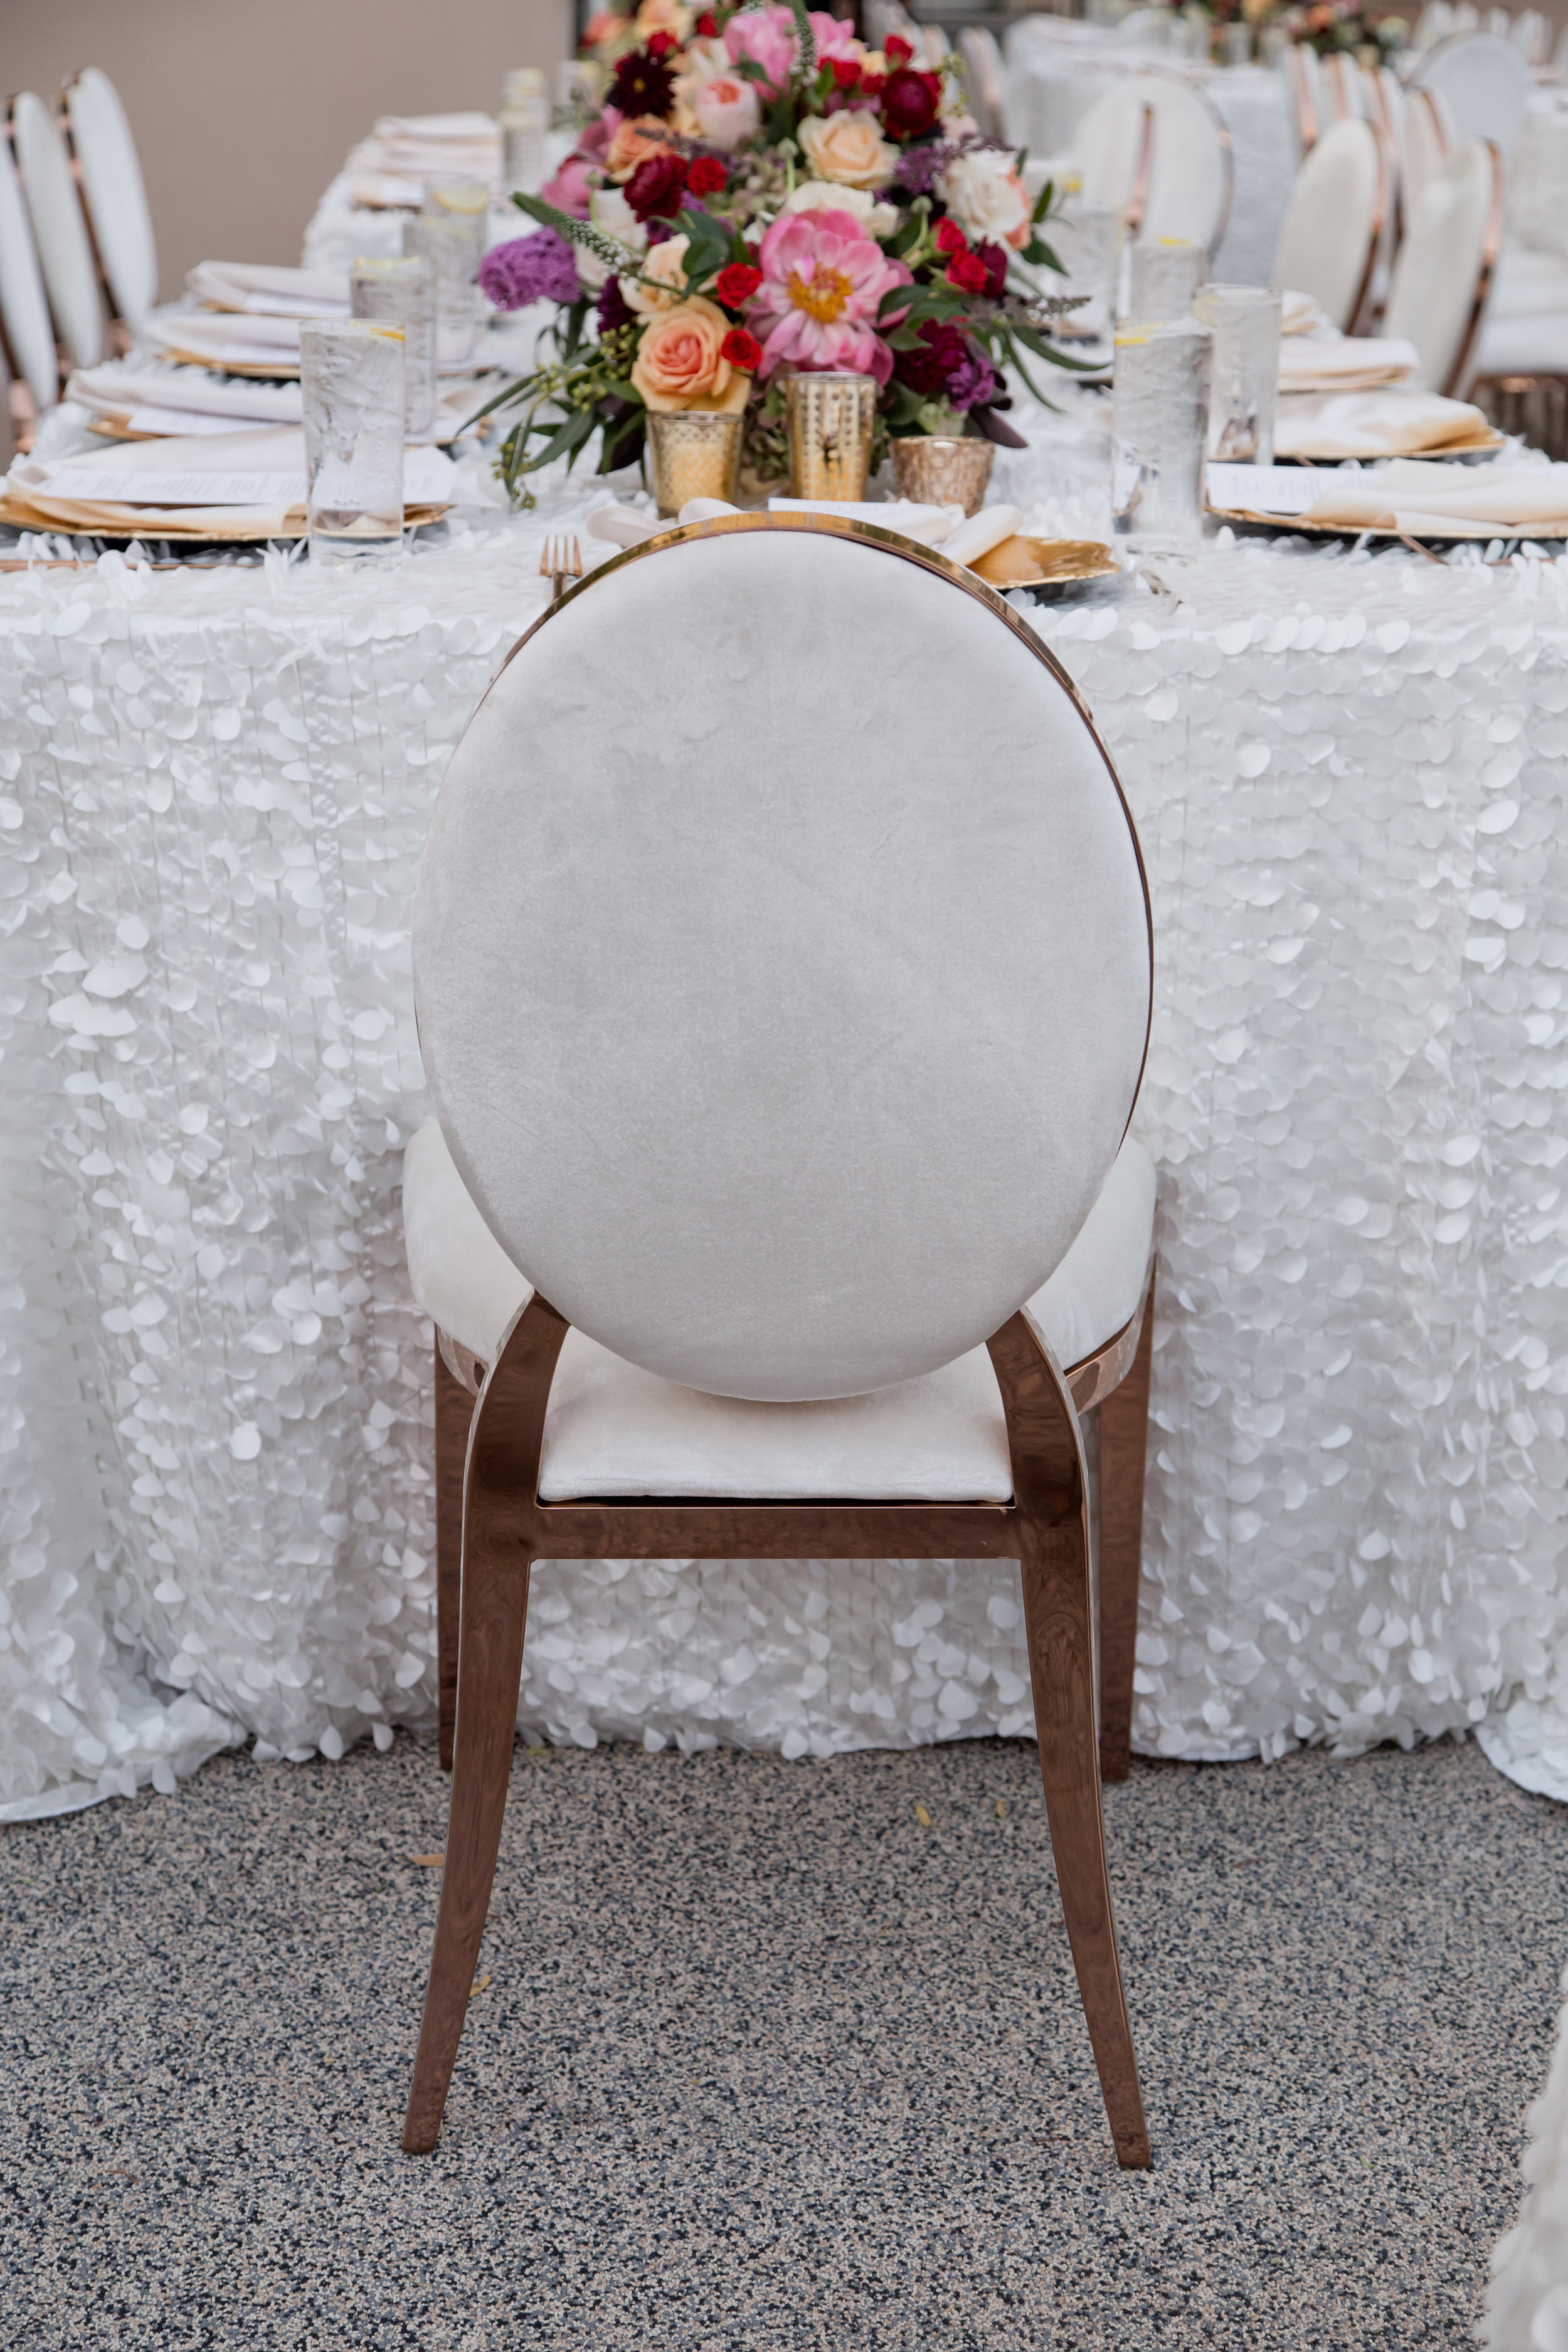 White and gold luxe wedding chair. Destination Wedding Planner  Andrea Eppolito ·Photos by  Adam Frazier Photography ·Floral and Decor by  Destinations by Design · Lighting by  LED Unplugged ·Venue · Invitations  Ceci New York  · Menus by  Alligator Soup